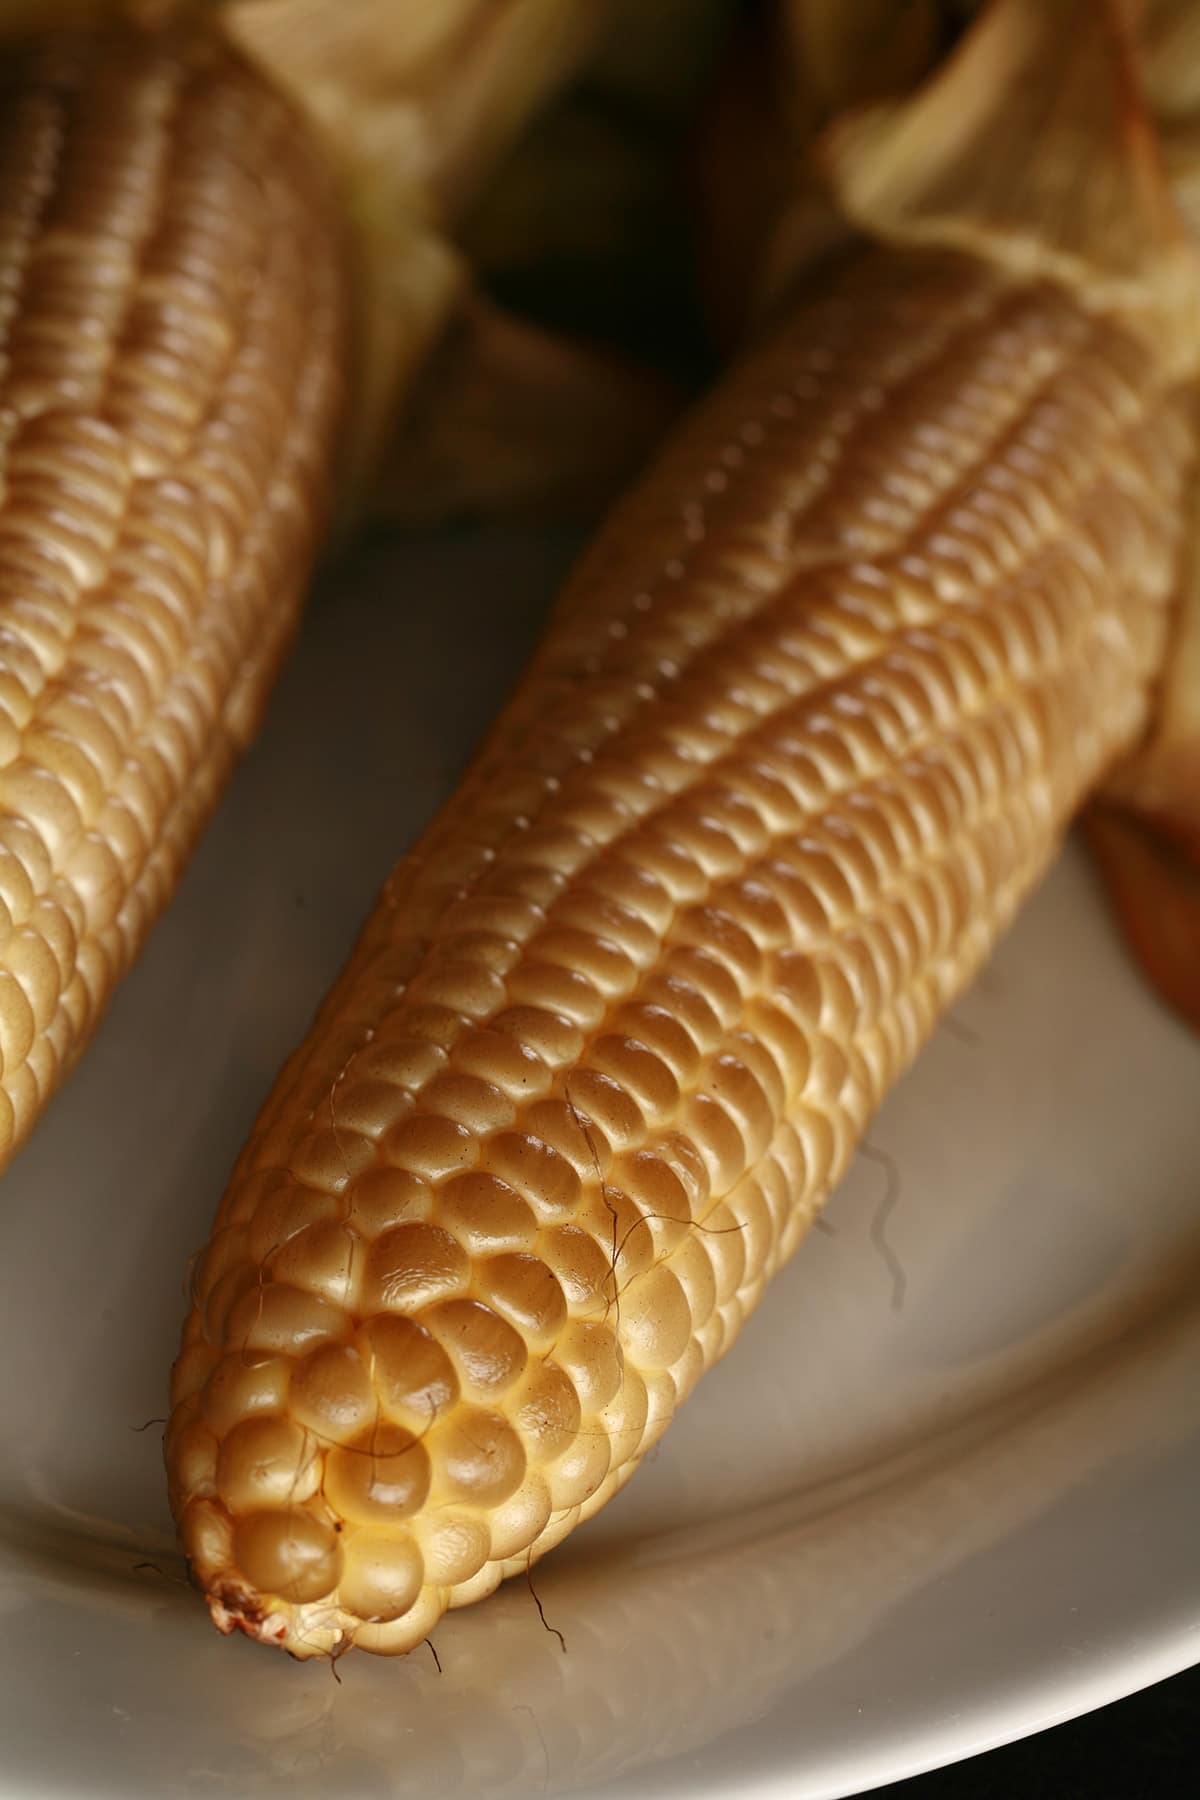 2 ears of smoked corn on the cob, on a white plate.